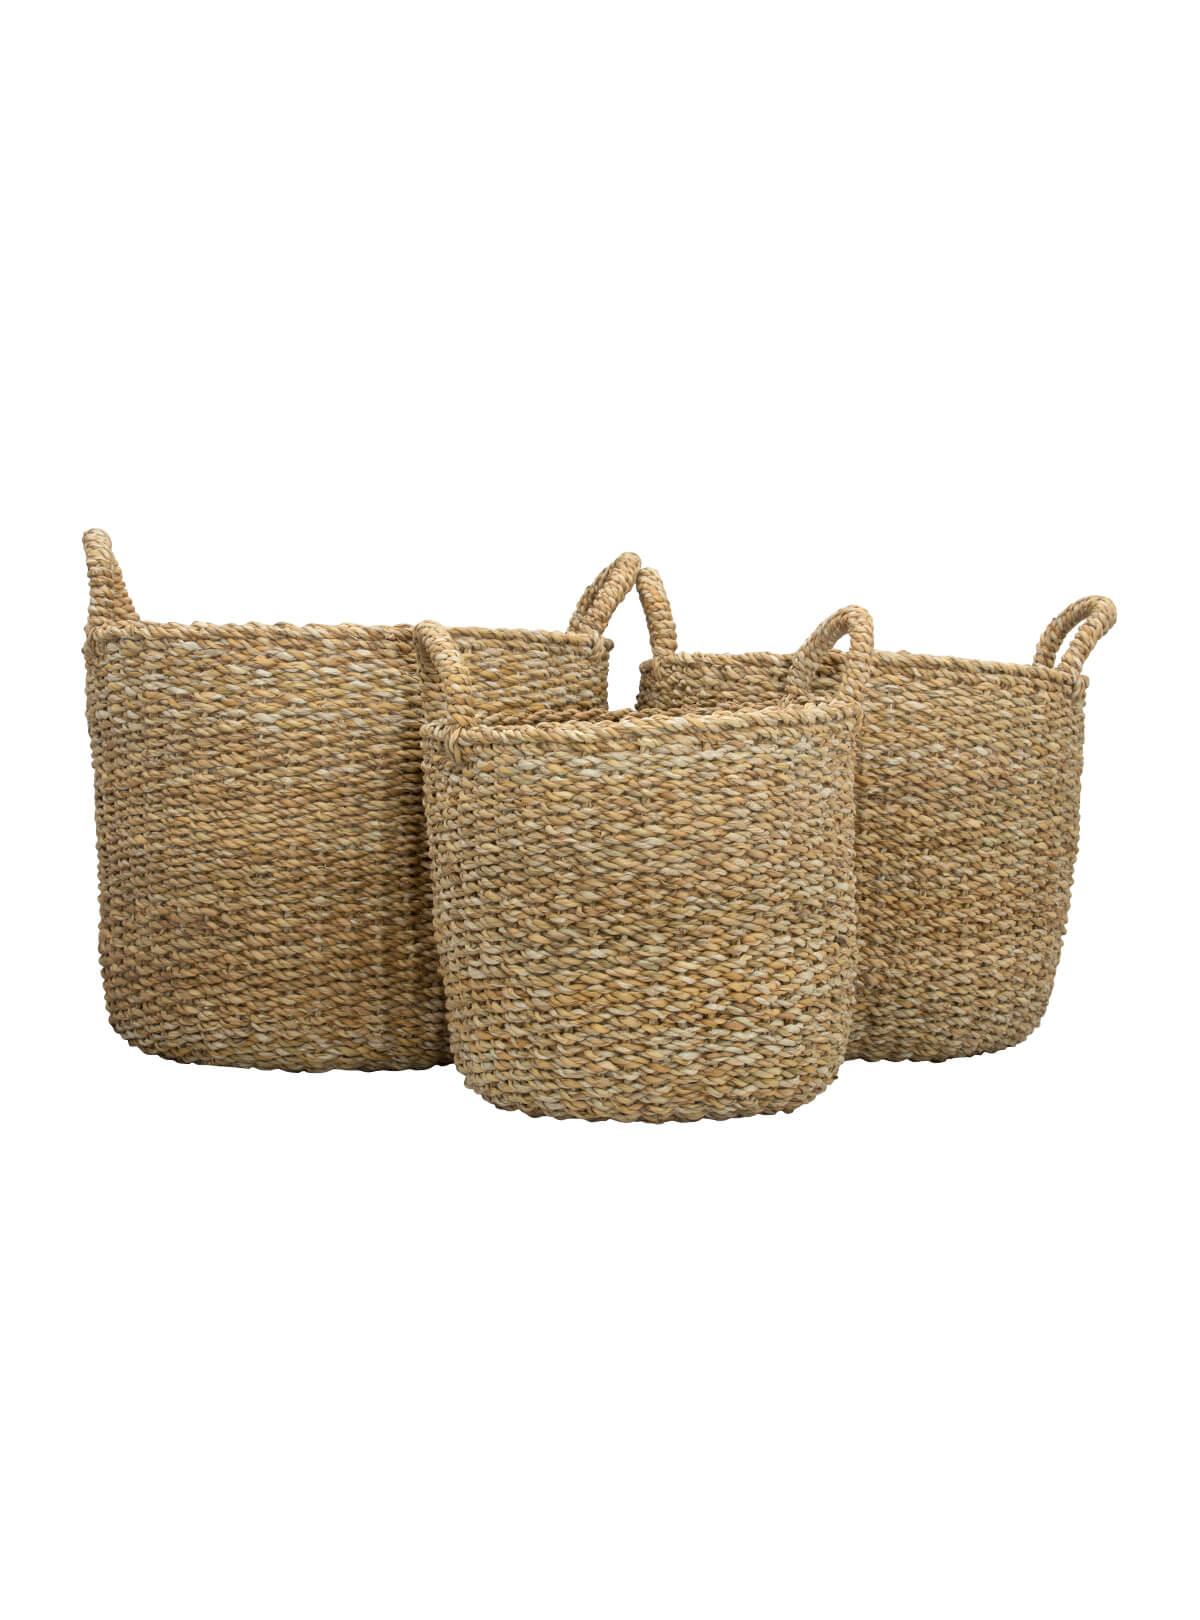 Sea Grass Woven Eco-Friendly Basket